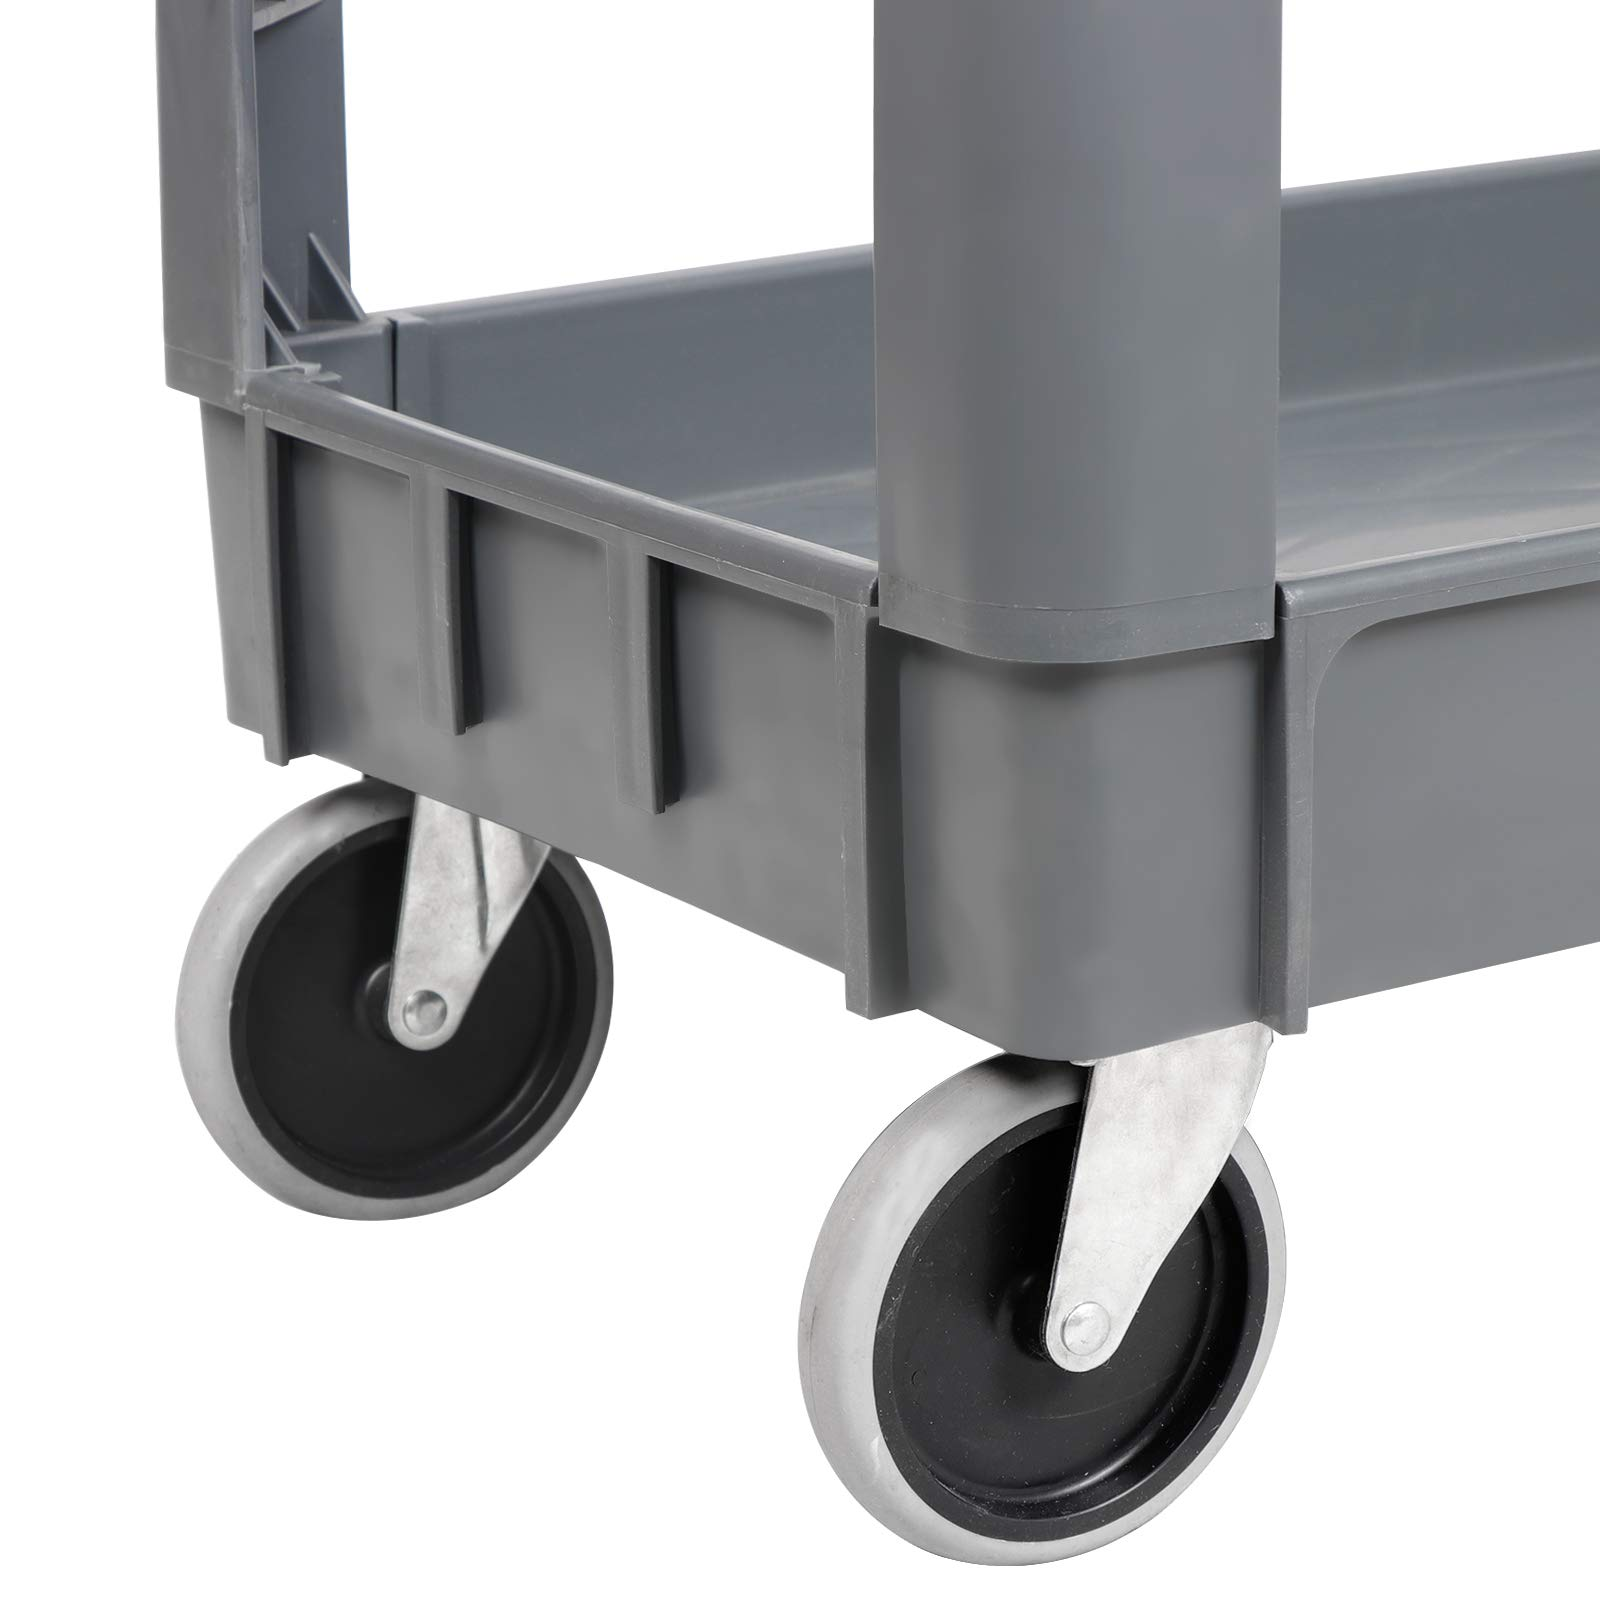 ZENY Rolling Utility Tool Storage Carts Shelves Push Service Cart Tools Organizer with Wheels 550 LBS Capacity by ZENY (Image #6)